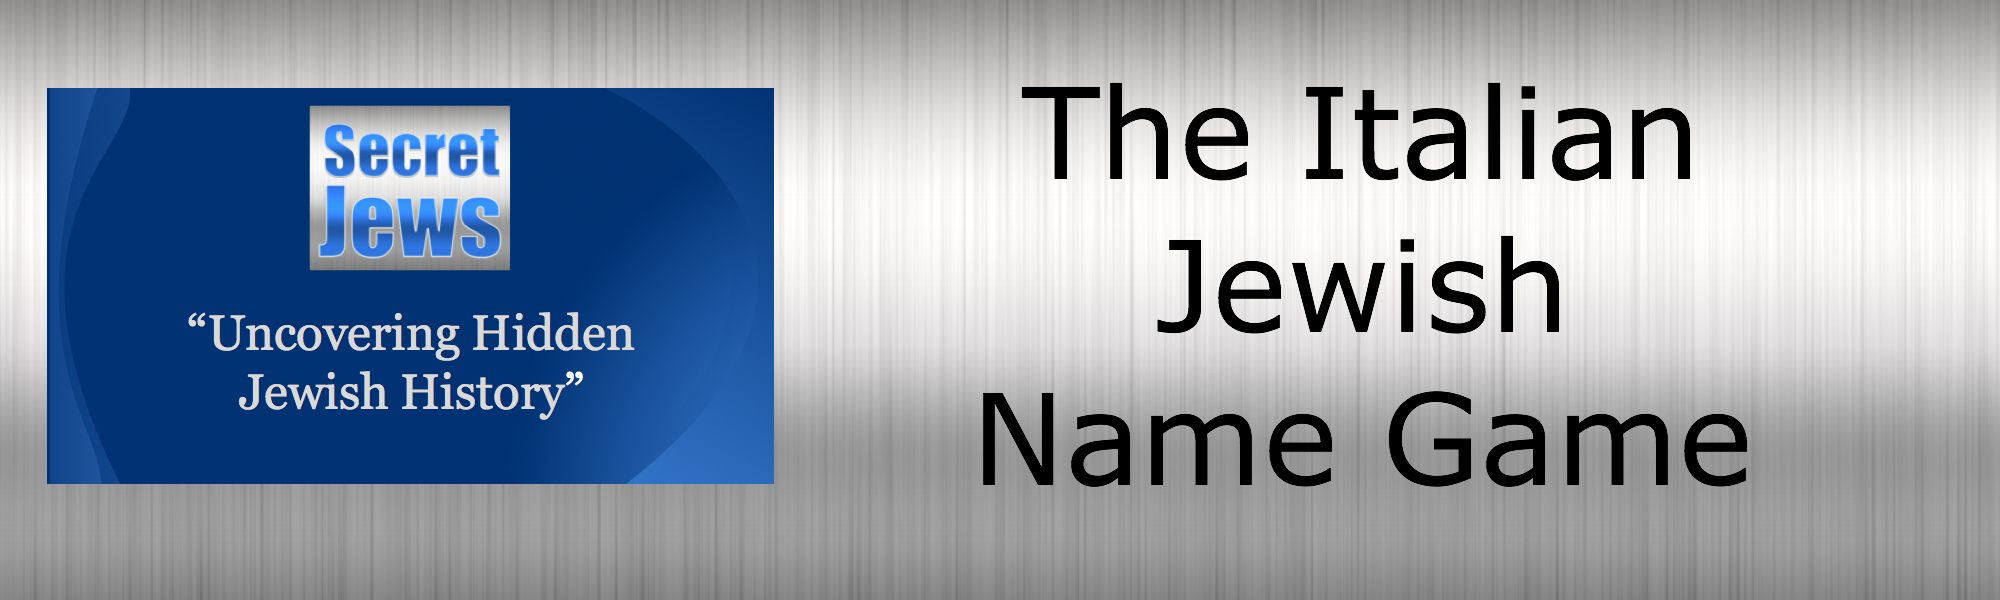 secret jews italian jewish name